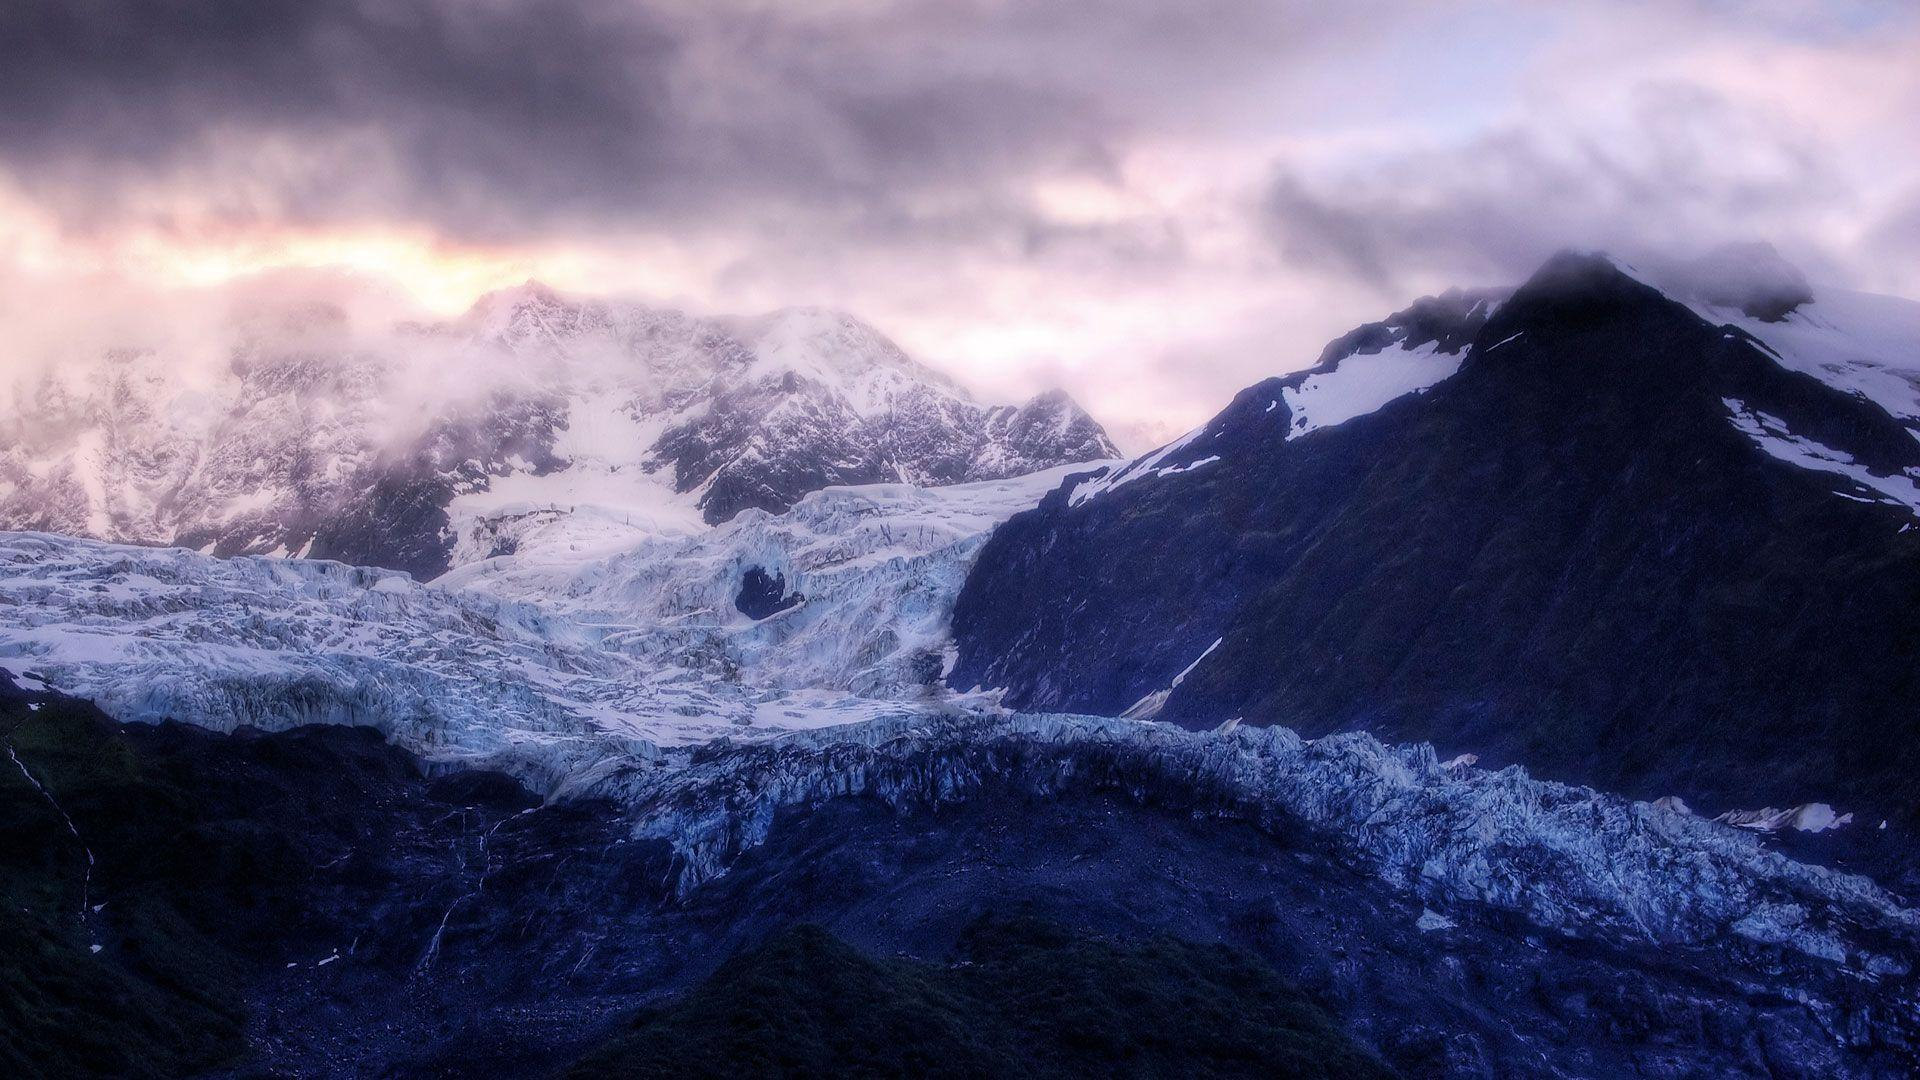 Breath-<b>taking</b> mountains background <b>nature wallpapers</b>   T?i hinh ...